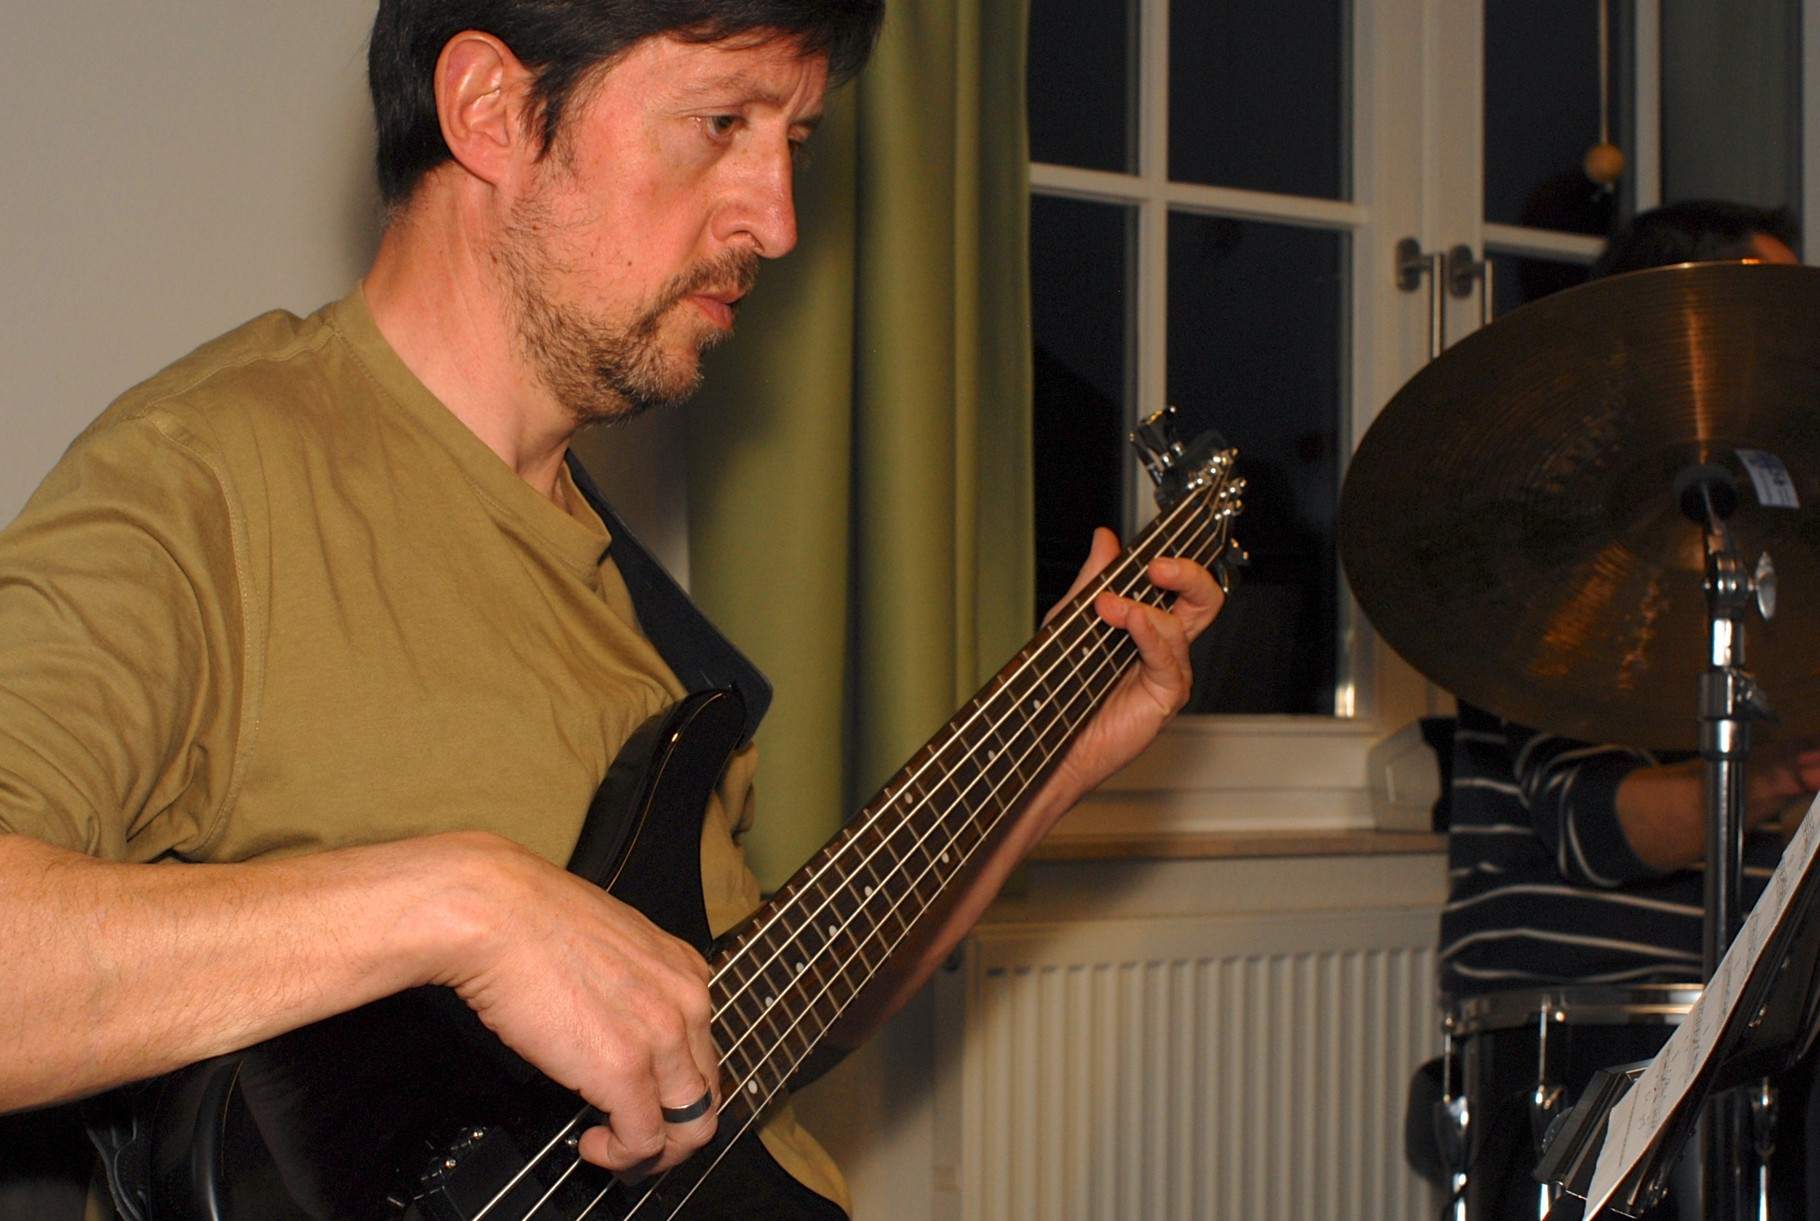 Der Bassist in Aktion